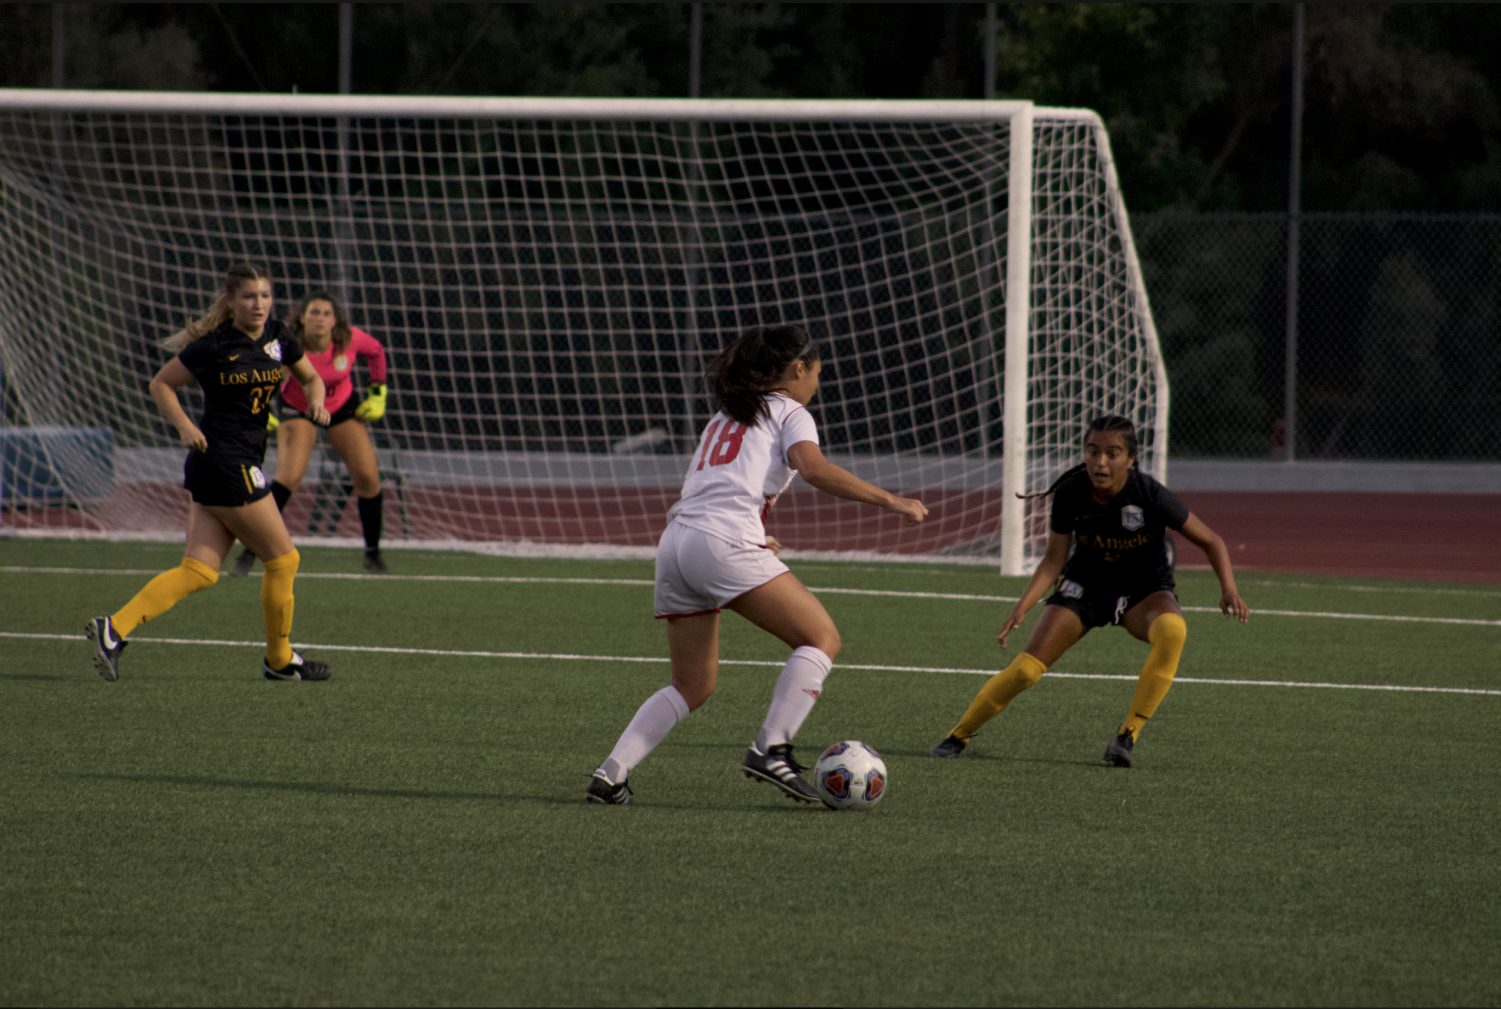 Senior forward Sarah Yang dribbles ball past her opponents.